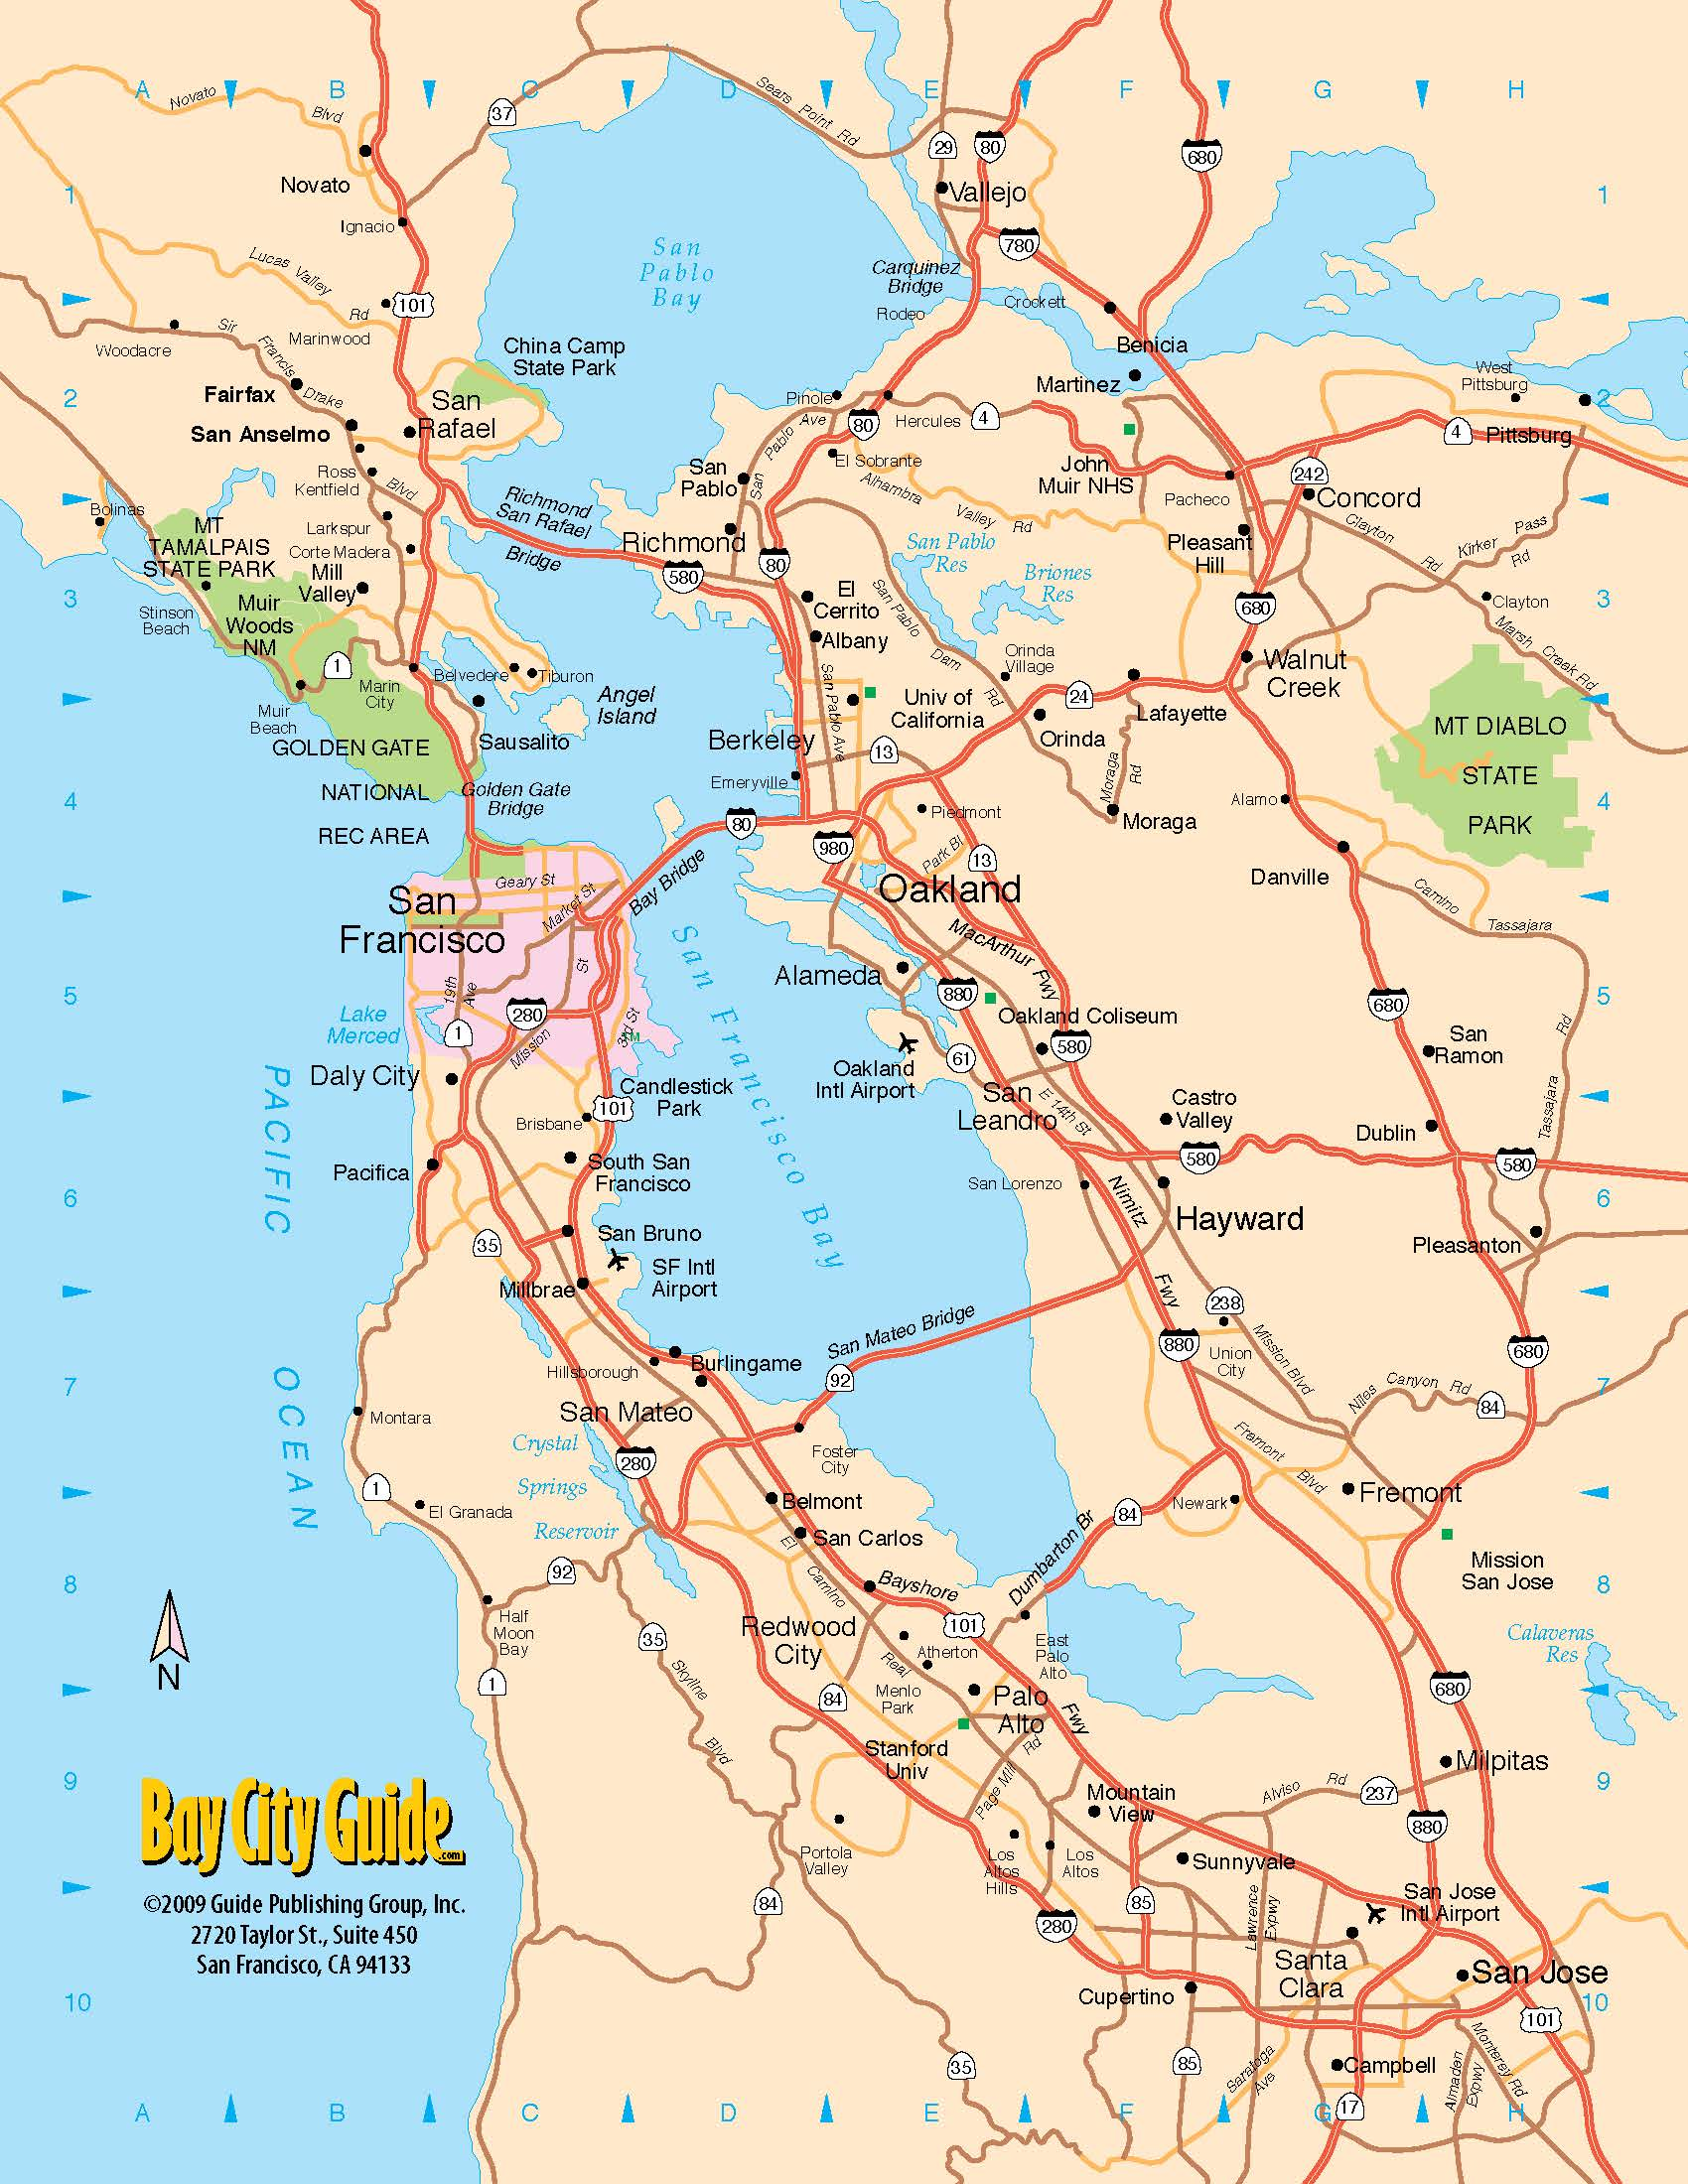 Asisbiz 0 Tourist Map San Francisco Bay Area North California Freeway System 0b The default map image, without image: or file asisbiz 0 tourist map san francisco bay